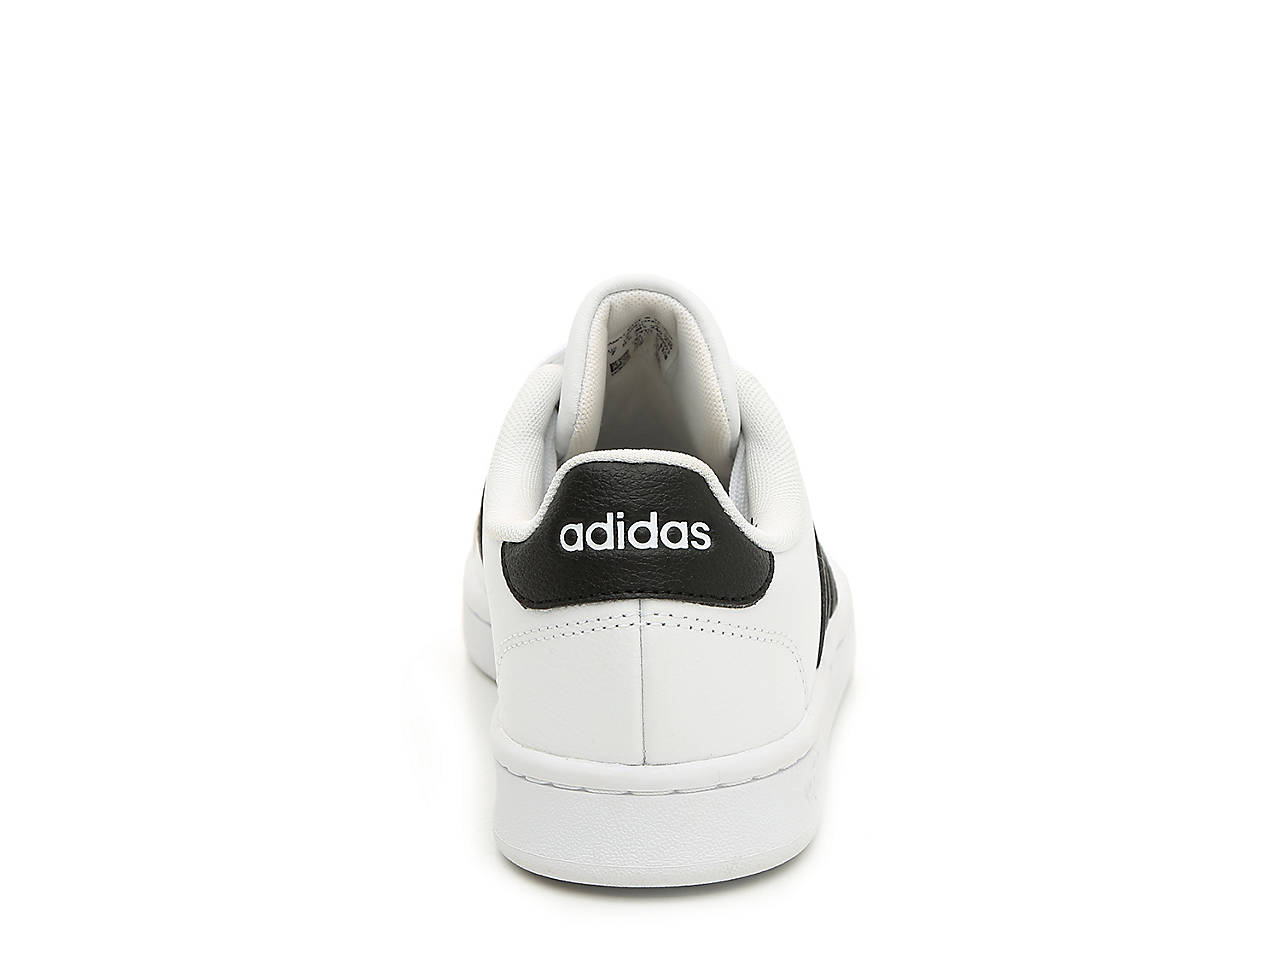 adidas Grand Court Sneaker Women's Women's Shoes | DSW